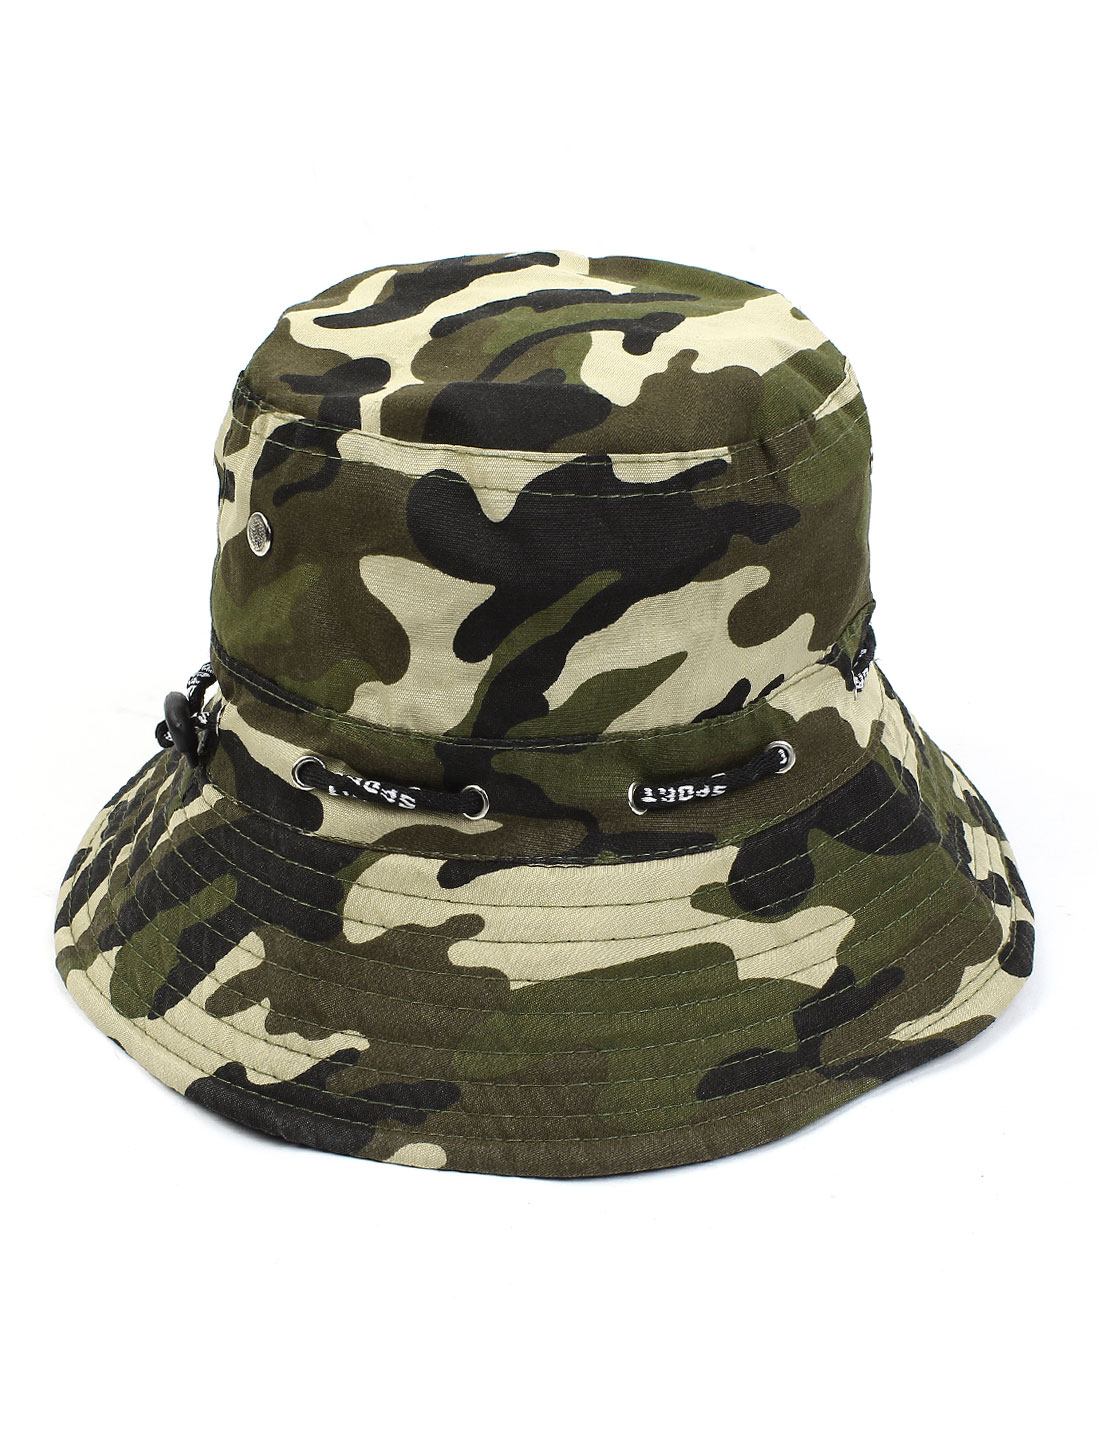 Sand Beach Leisure Round Brim Sun Visor Camouflage Print Bucket Hat Cap for Unisex